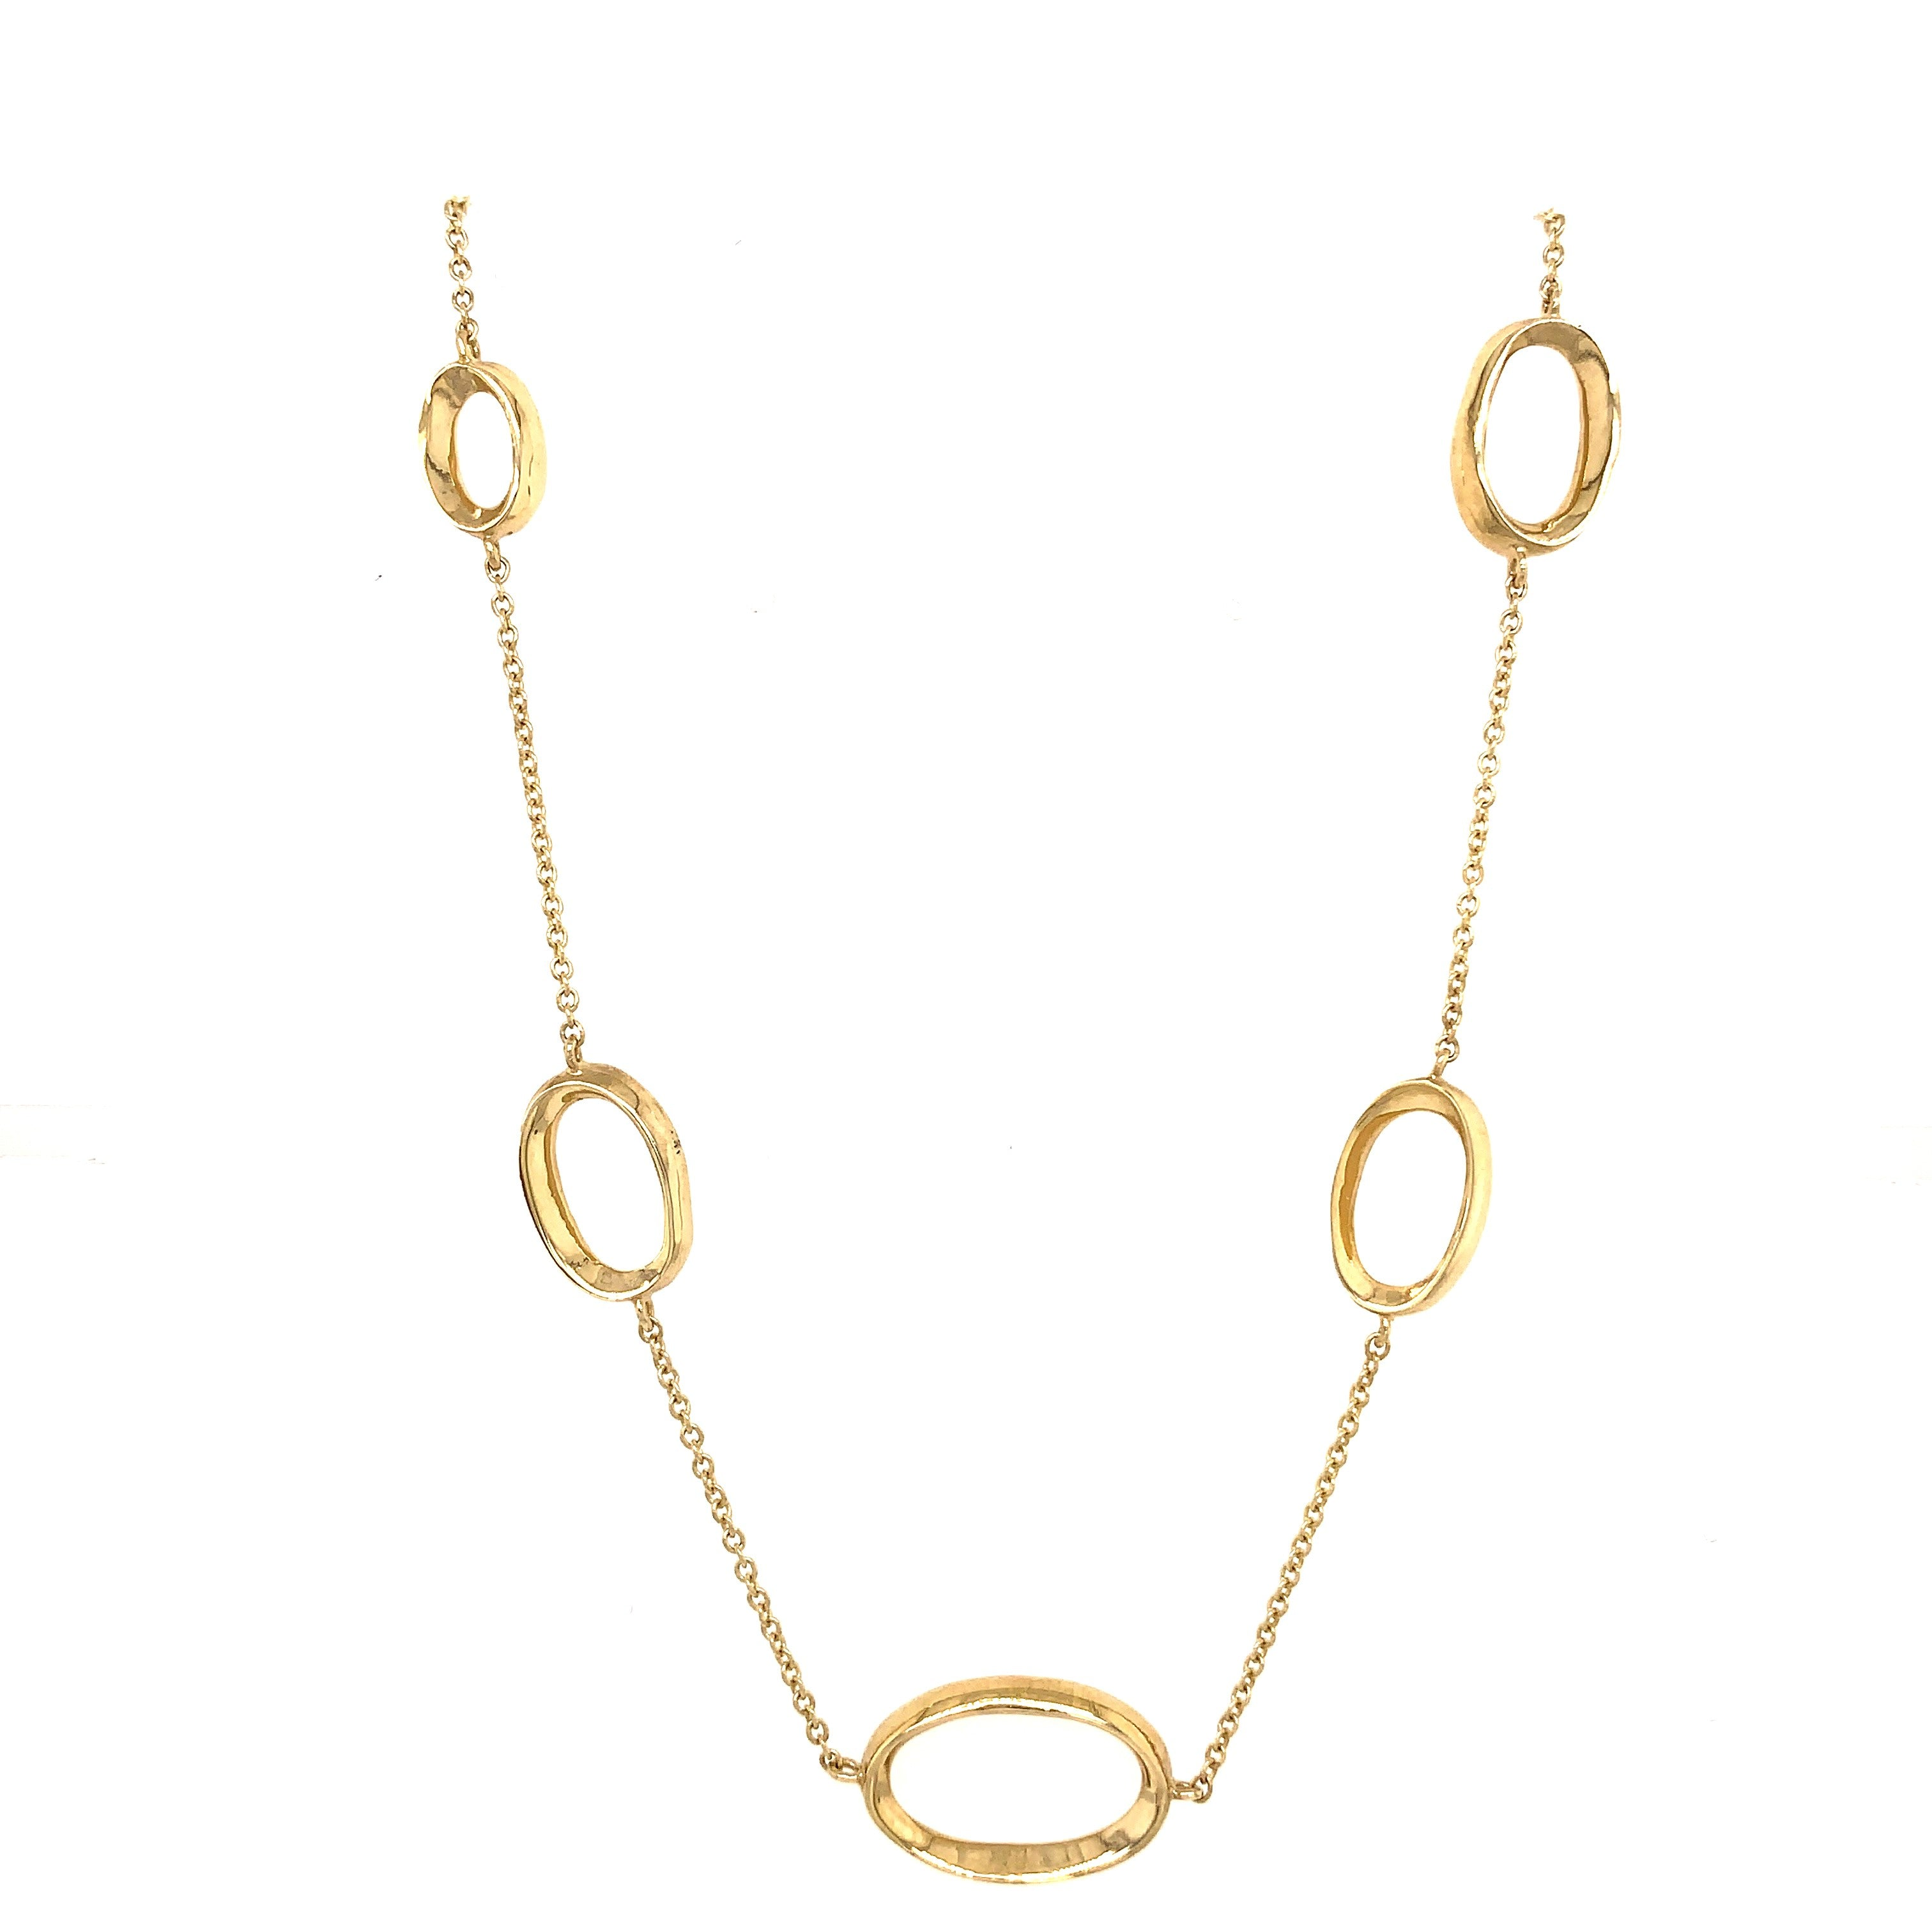 9ct Yellow Gold Oval Linked Chain Necklace - Andrew Scott